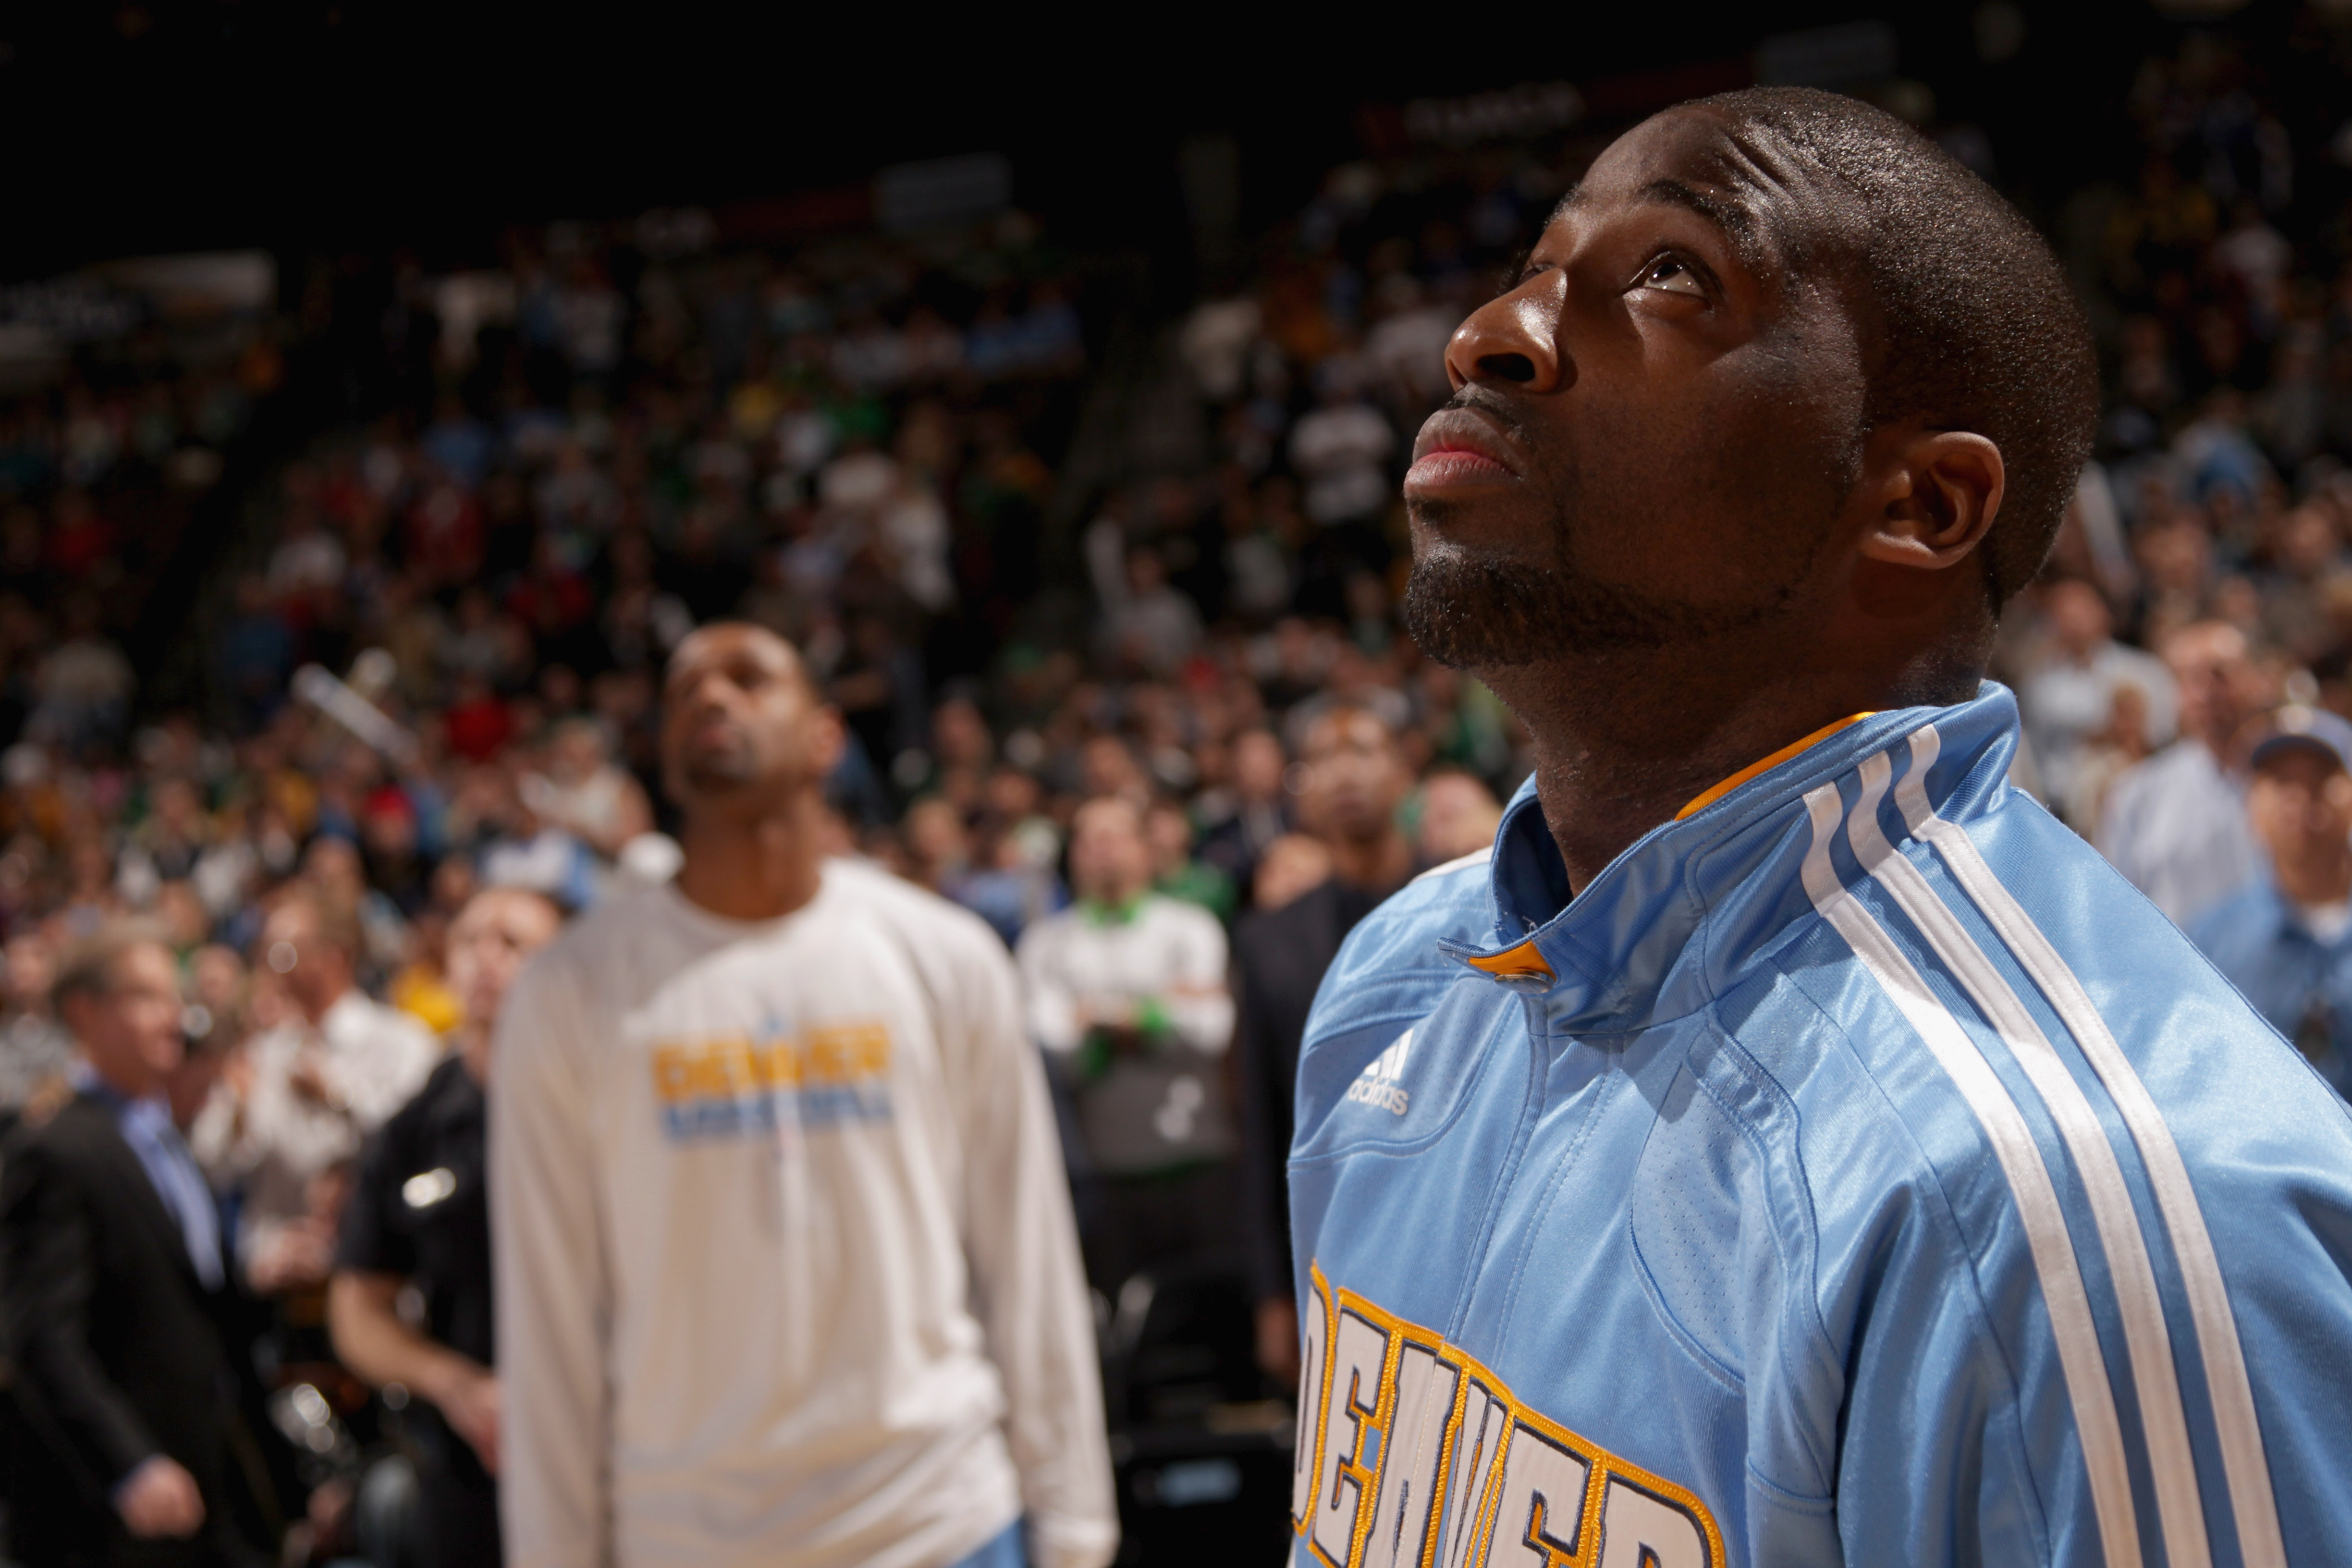 DENVER, CO - FEBRUARY 24:  Raymond Felton #20 of the Denver Nuggets looks on during pregame festivities prior to facing the Boston Celtics during NBA action at the Pepsi Center on February 24, 2011 in Denver, Colorado. The Nuggets defeated the Celtics 89-